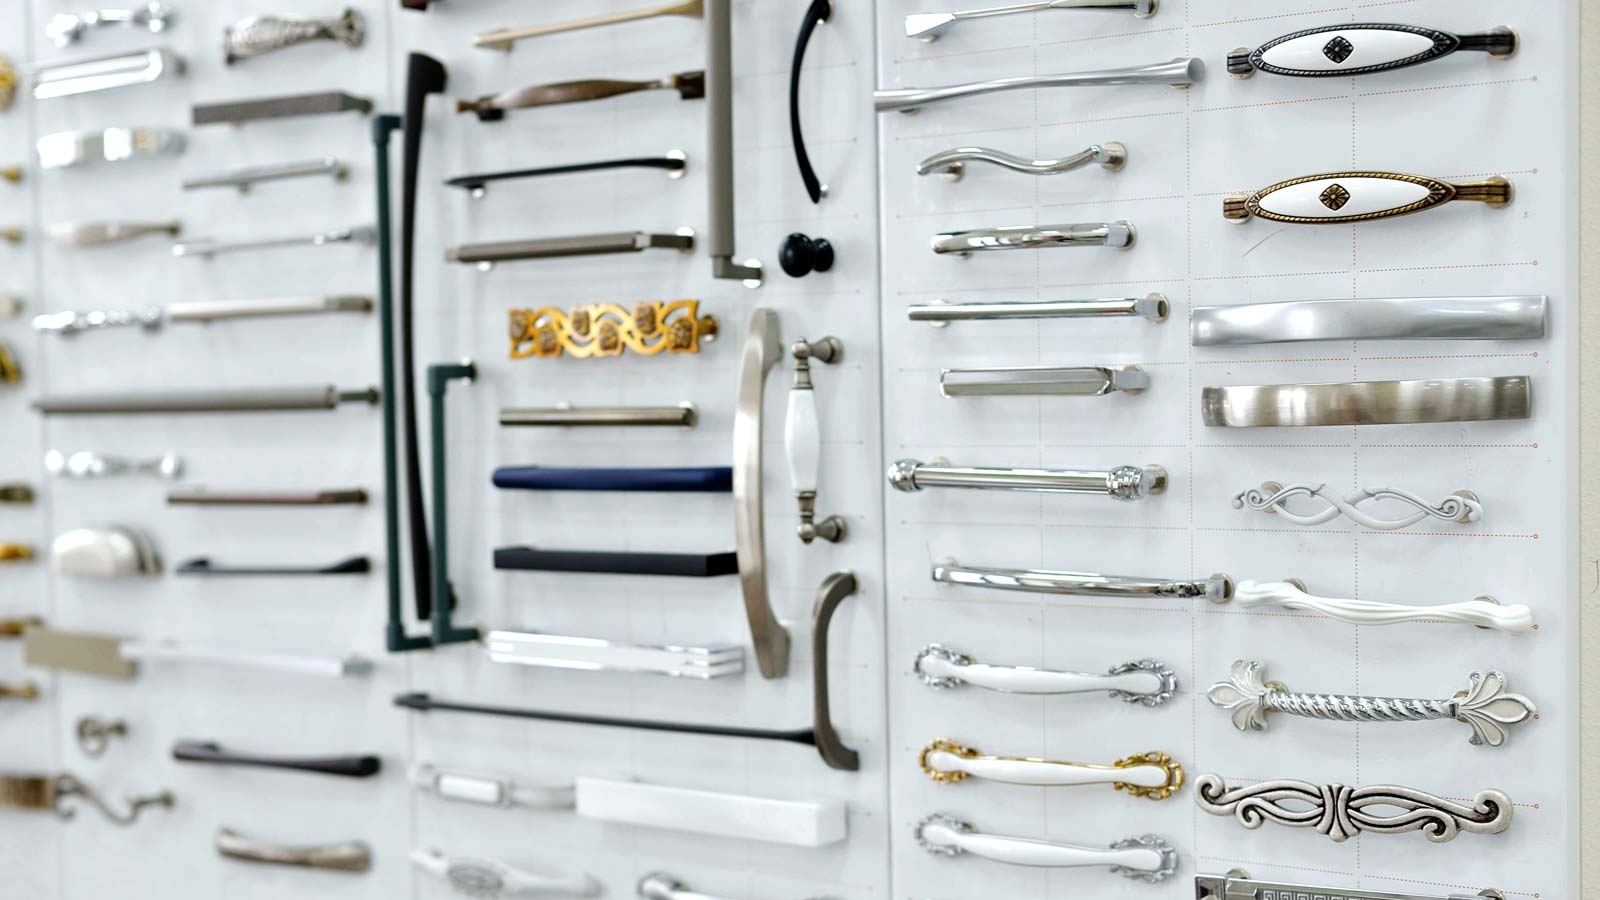 Knobs or pulls? Contemporary or traditional? Here are some tips to picking the right kitchen cabinet hardware.